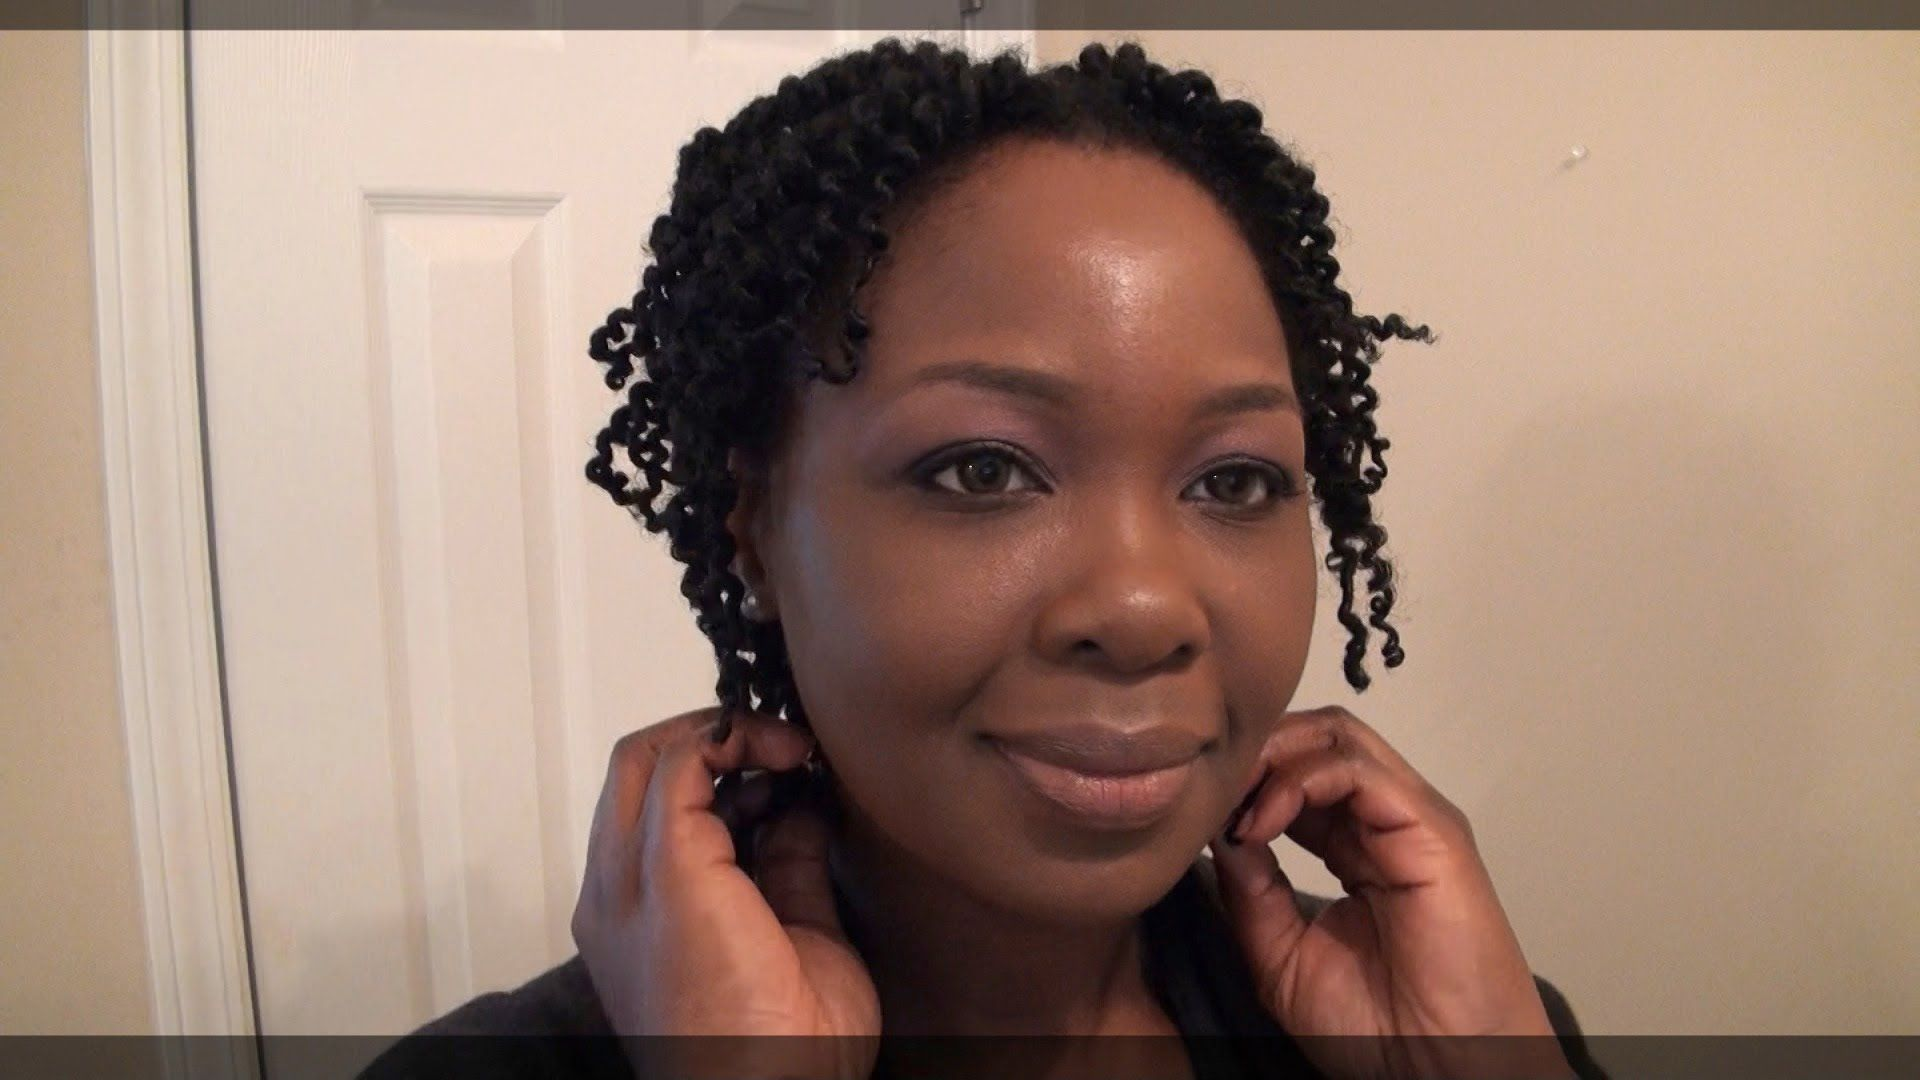 pin on how to style, grow & manage natural hair!